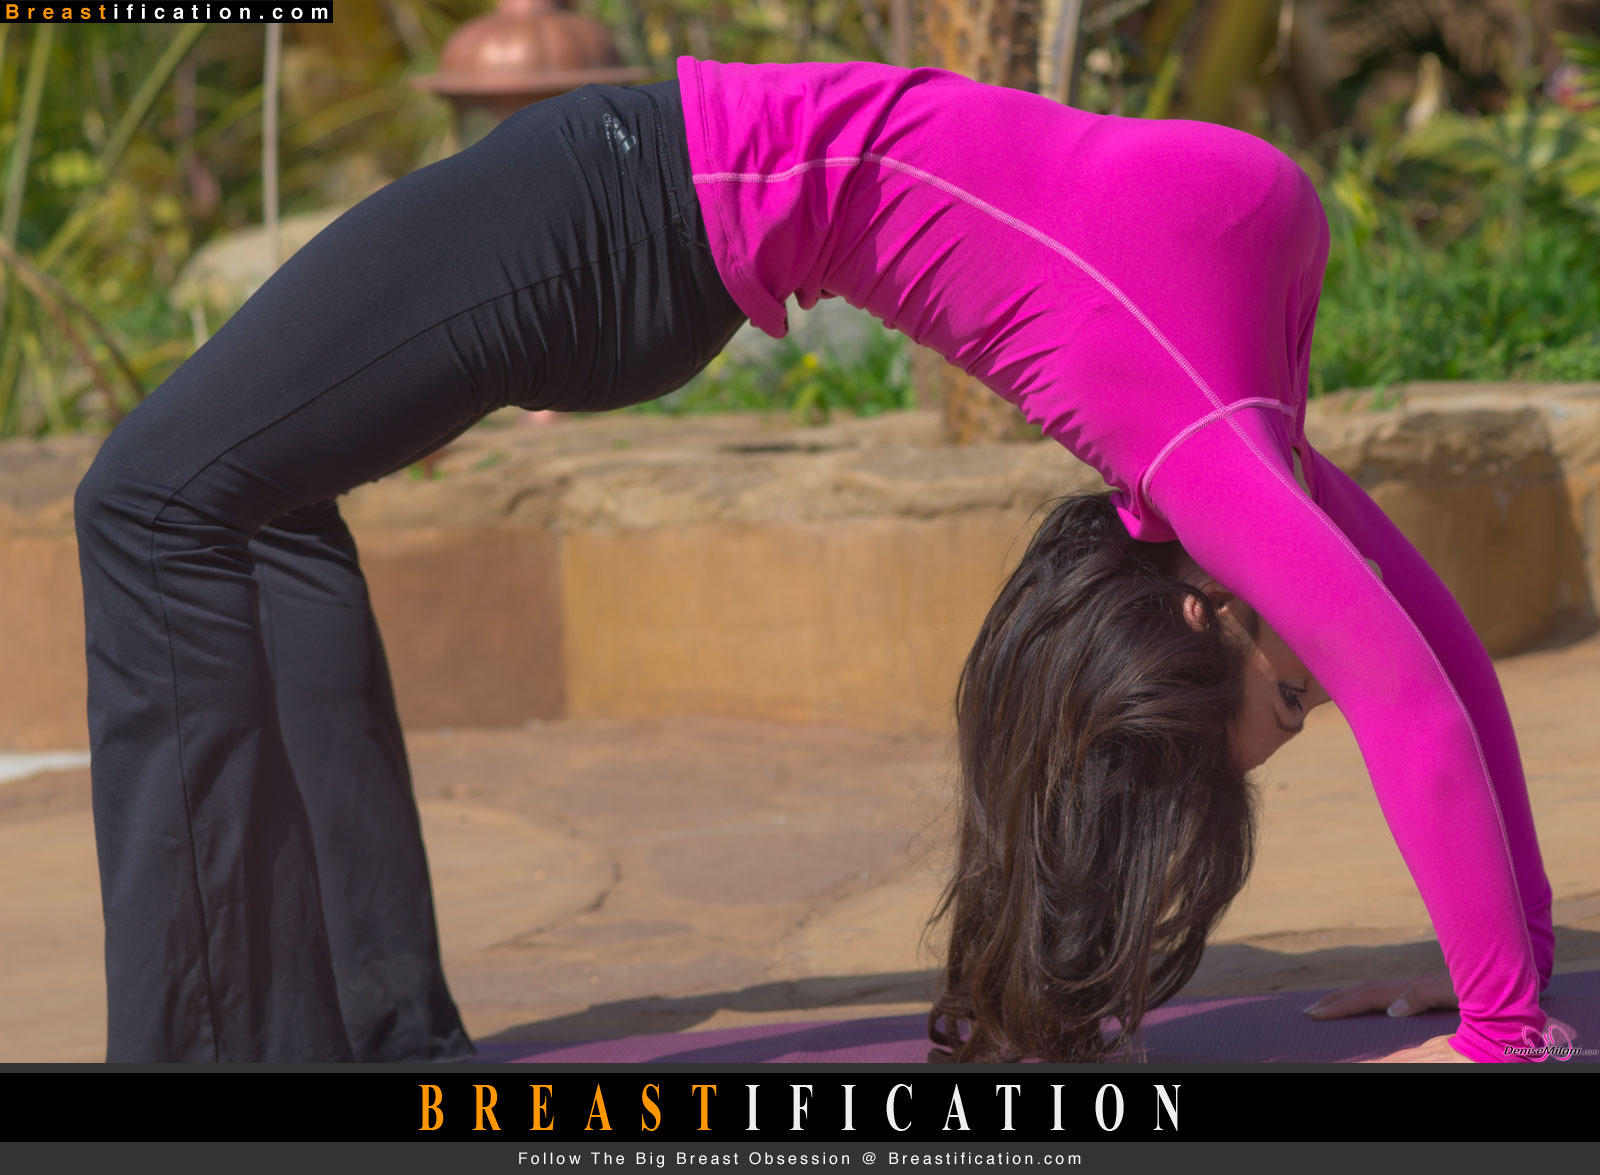 Big boobs yoga courtesy of the gorgeous and fit Denise Milani #Breastification http://t.co/pxbqztUi